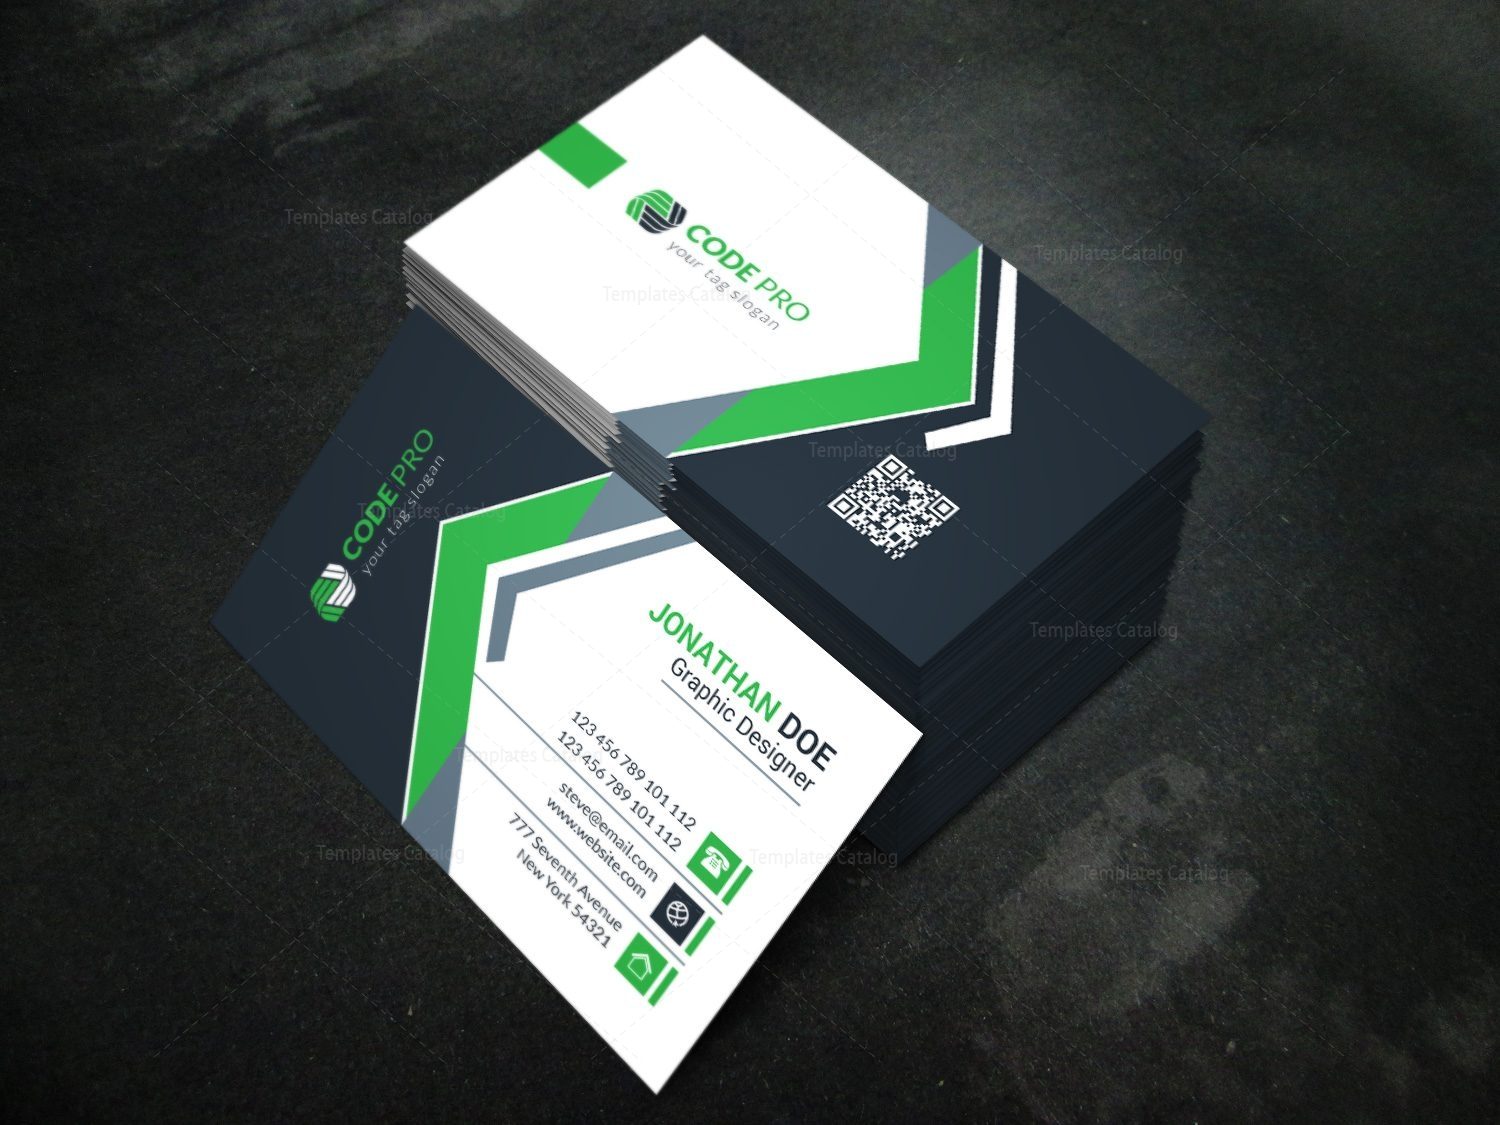 Modern business card design template in eps format 001623 template modern business card design template in eps format 4 fbccfo Image collections